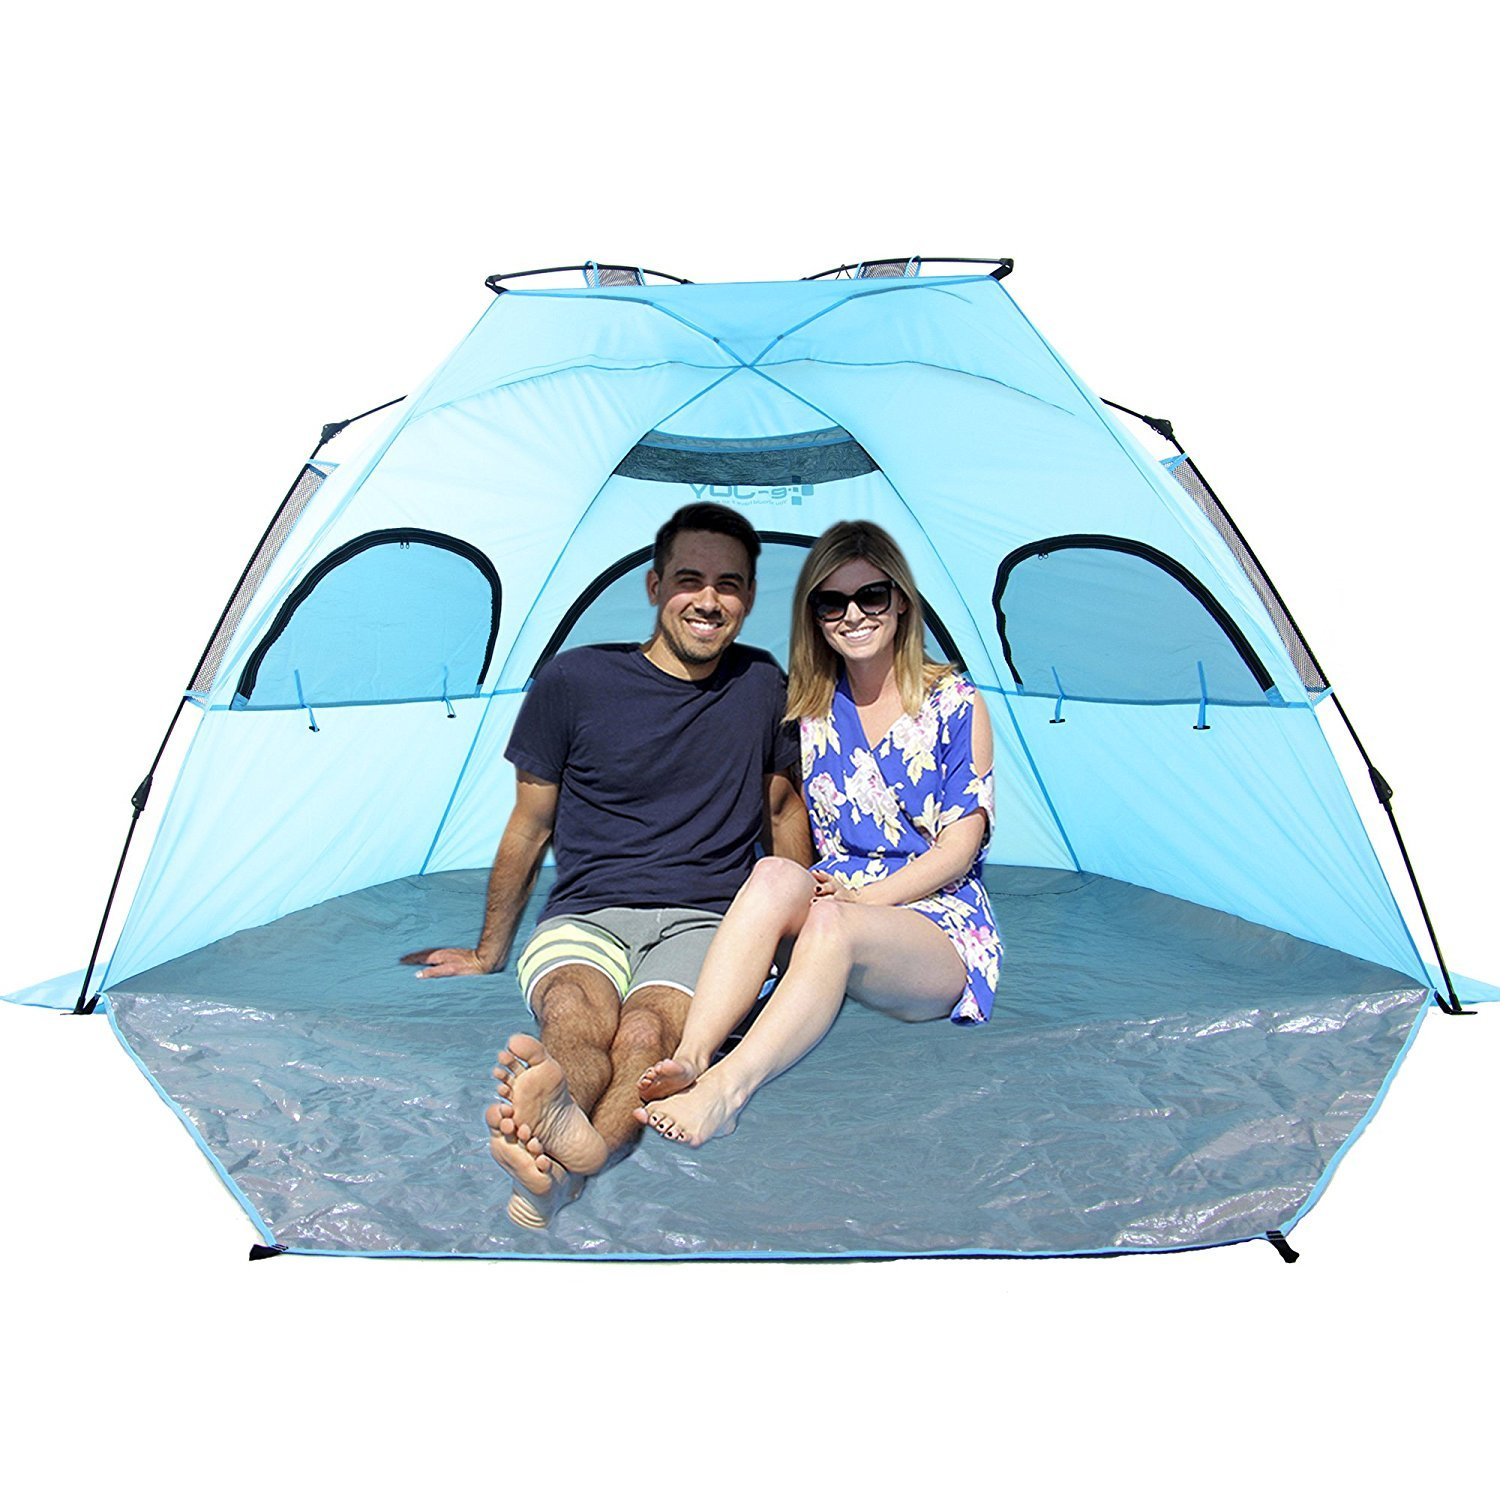 e-JoyOutdoor Deluxe Beach Tent, Quick Portable, UV Sun Sport Shelter, Cabana Instant Easy Up Beach Umbrella Tent, X-Large   B079SB9SSB